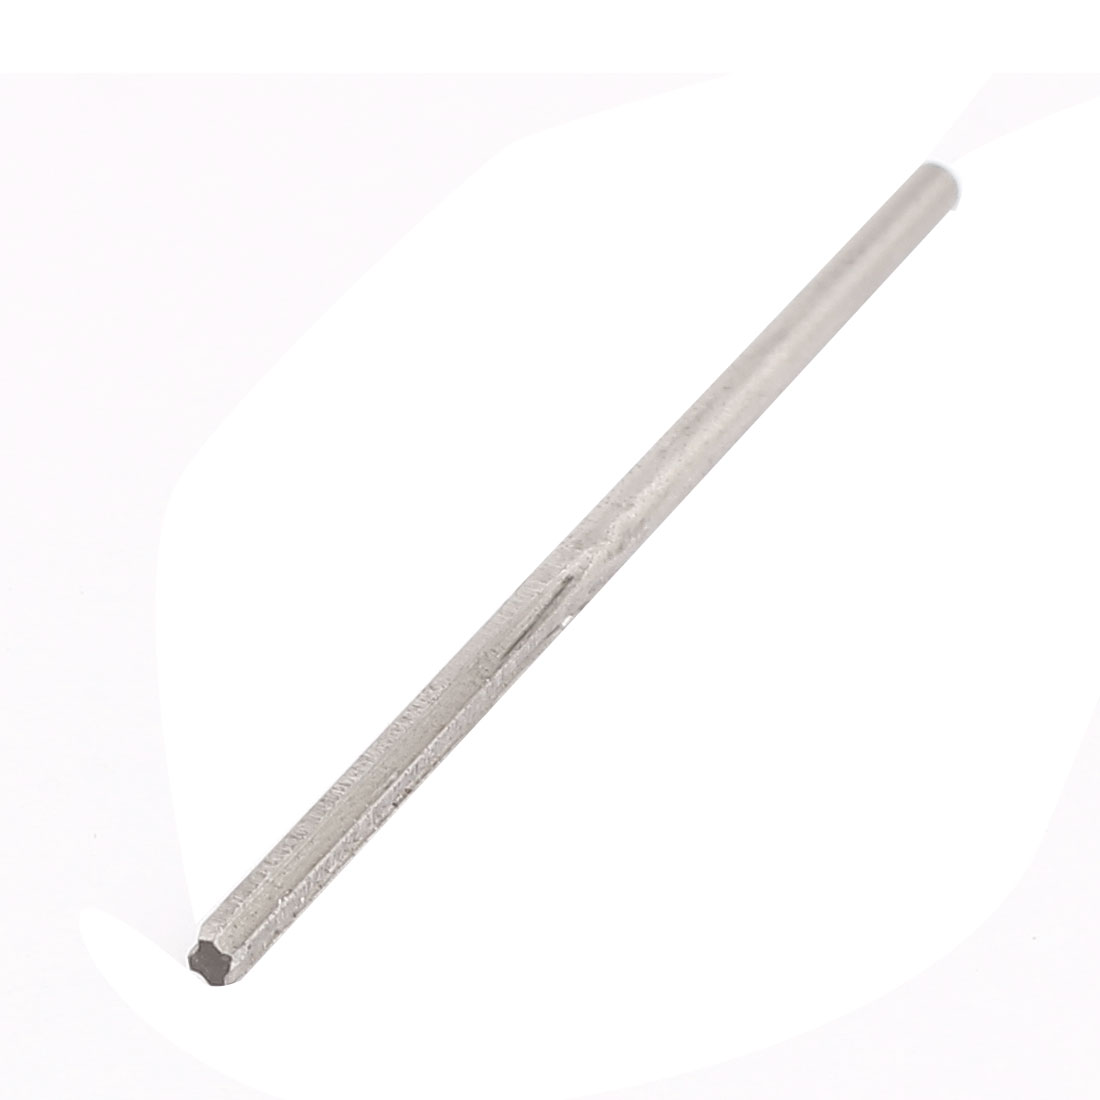 2mm Cutting Diameter 49mm Long 4 Flutes Straight Shank Machine Chucking Reamer